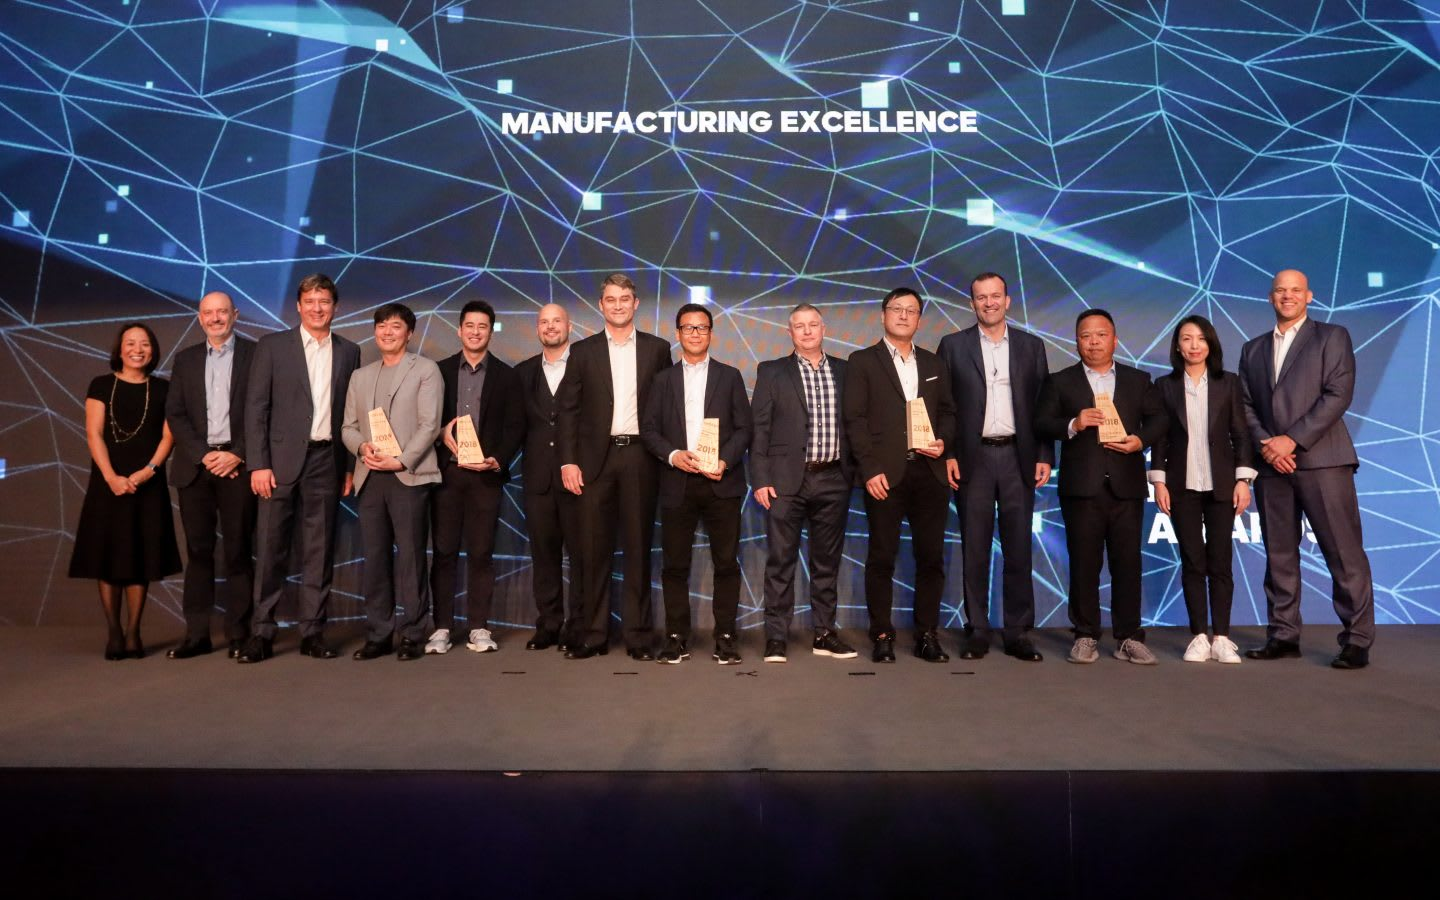 People standing on stage in formal attire in a row, leadership, conference, formal, meeting, Hoa Ly, adidas, employee, team